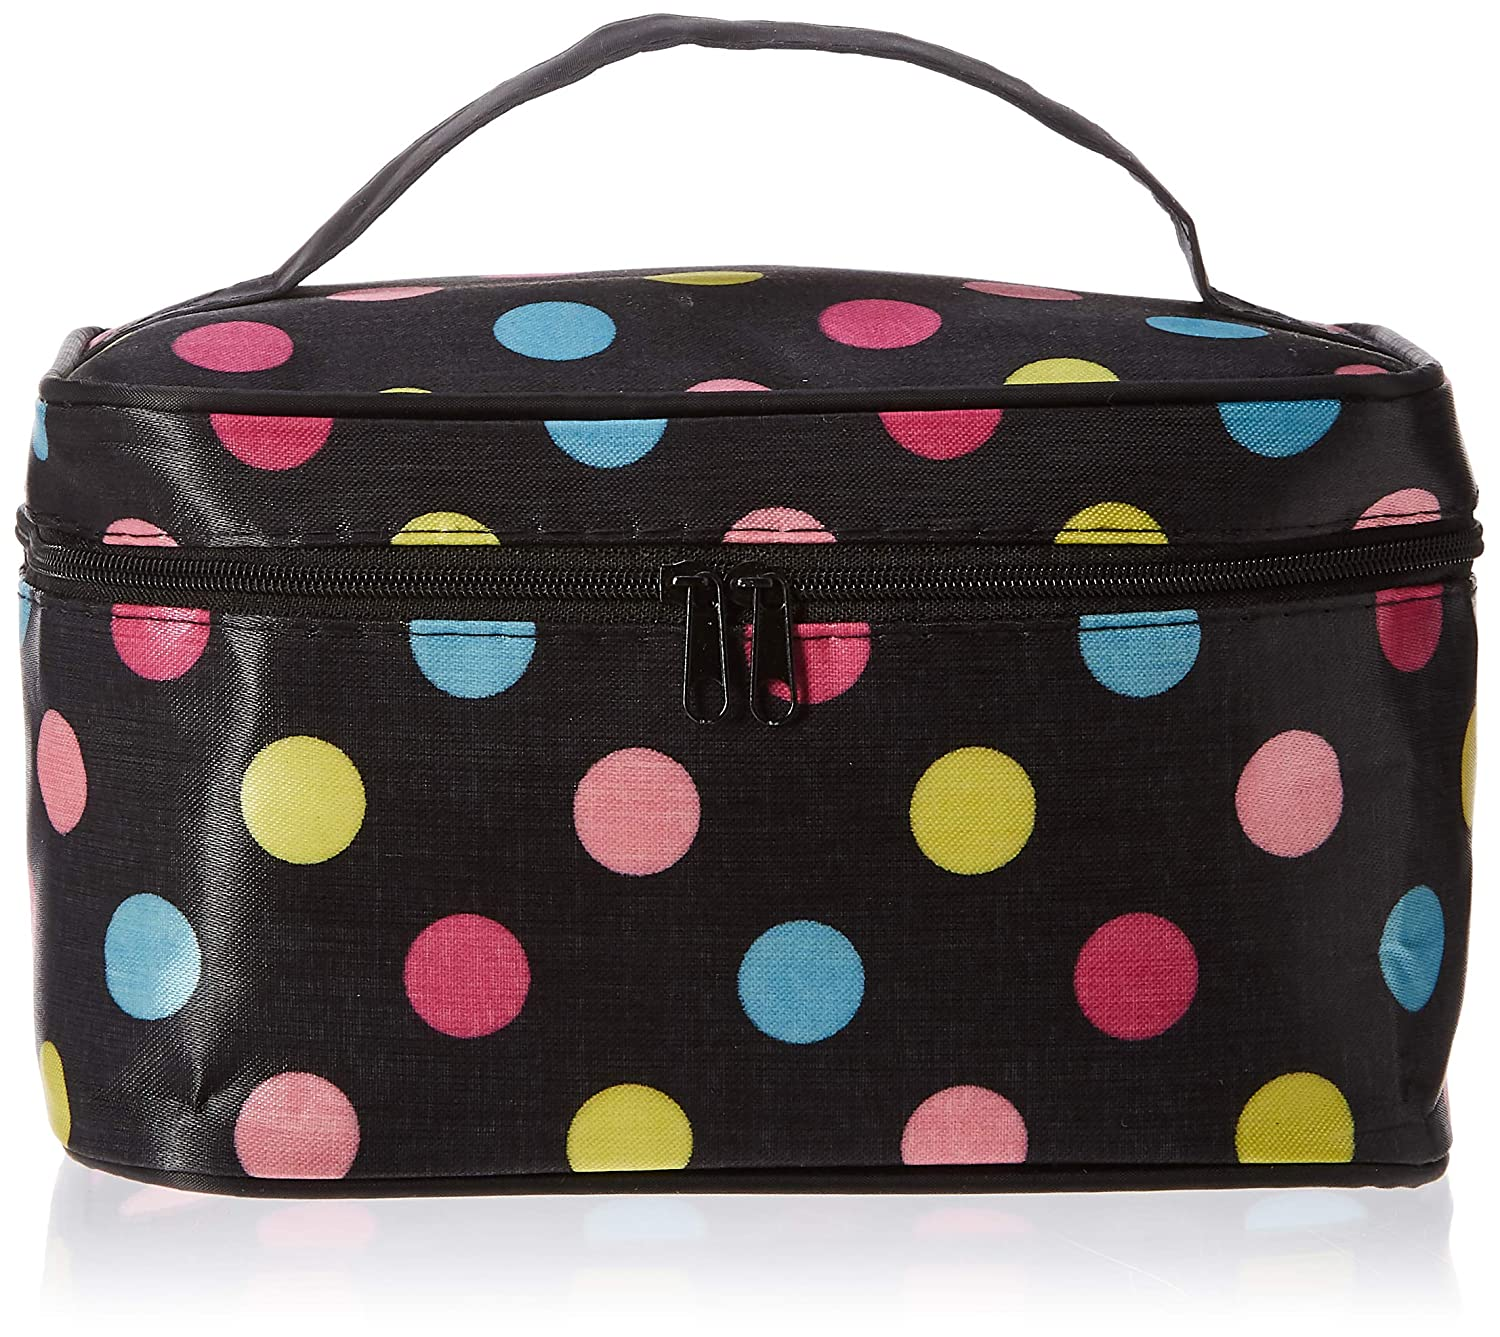 Makeup Bag Travel Bag with Quality Zipper Single Layer Multifunctional Cosmetics Bag Colorful Dot Makeup Organizer Case Holder With Mirror for Women Ladies Girl